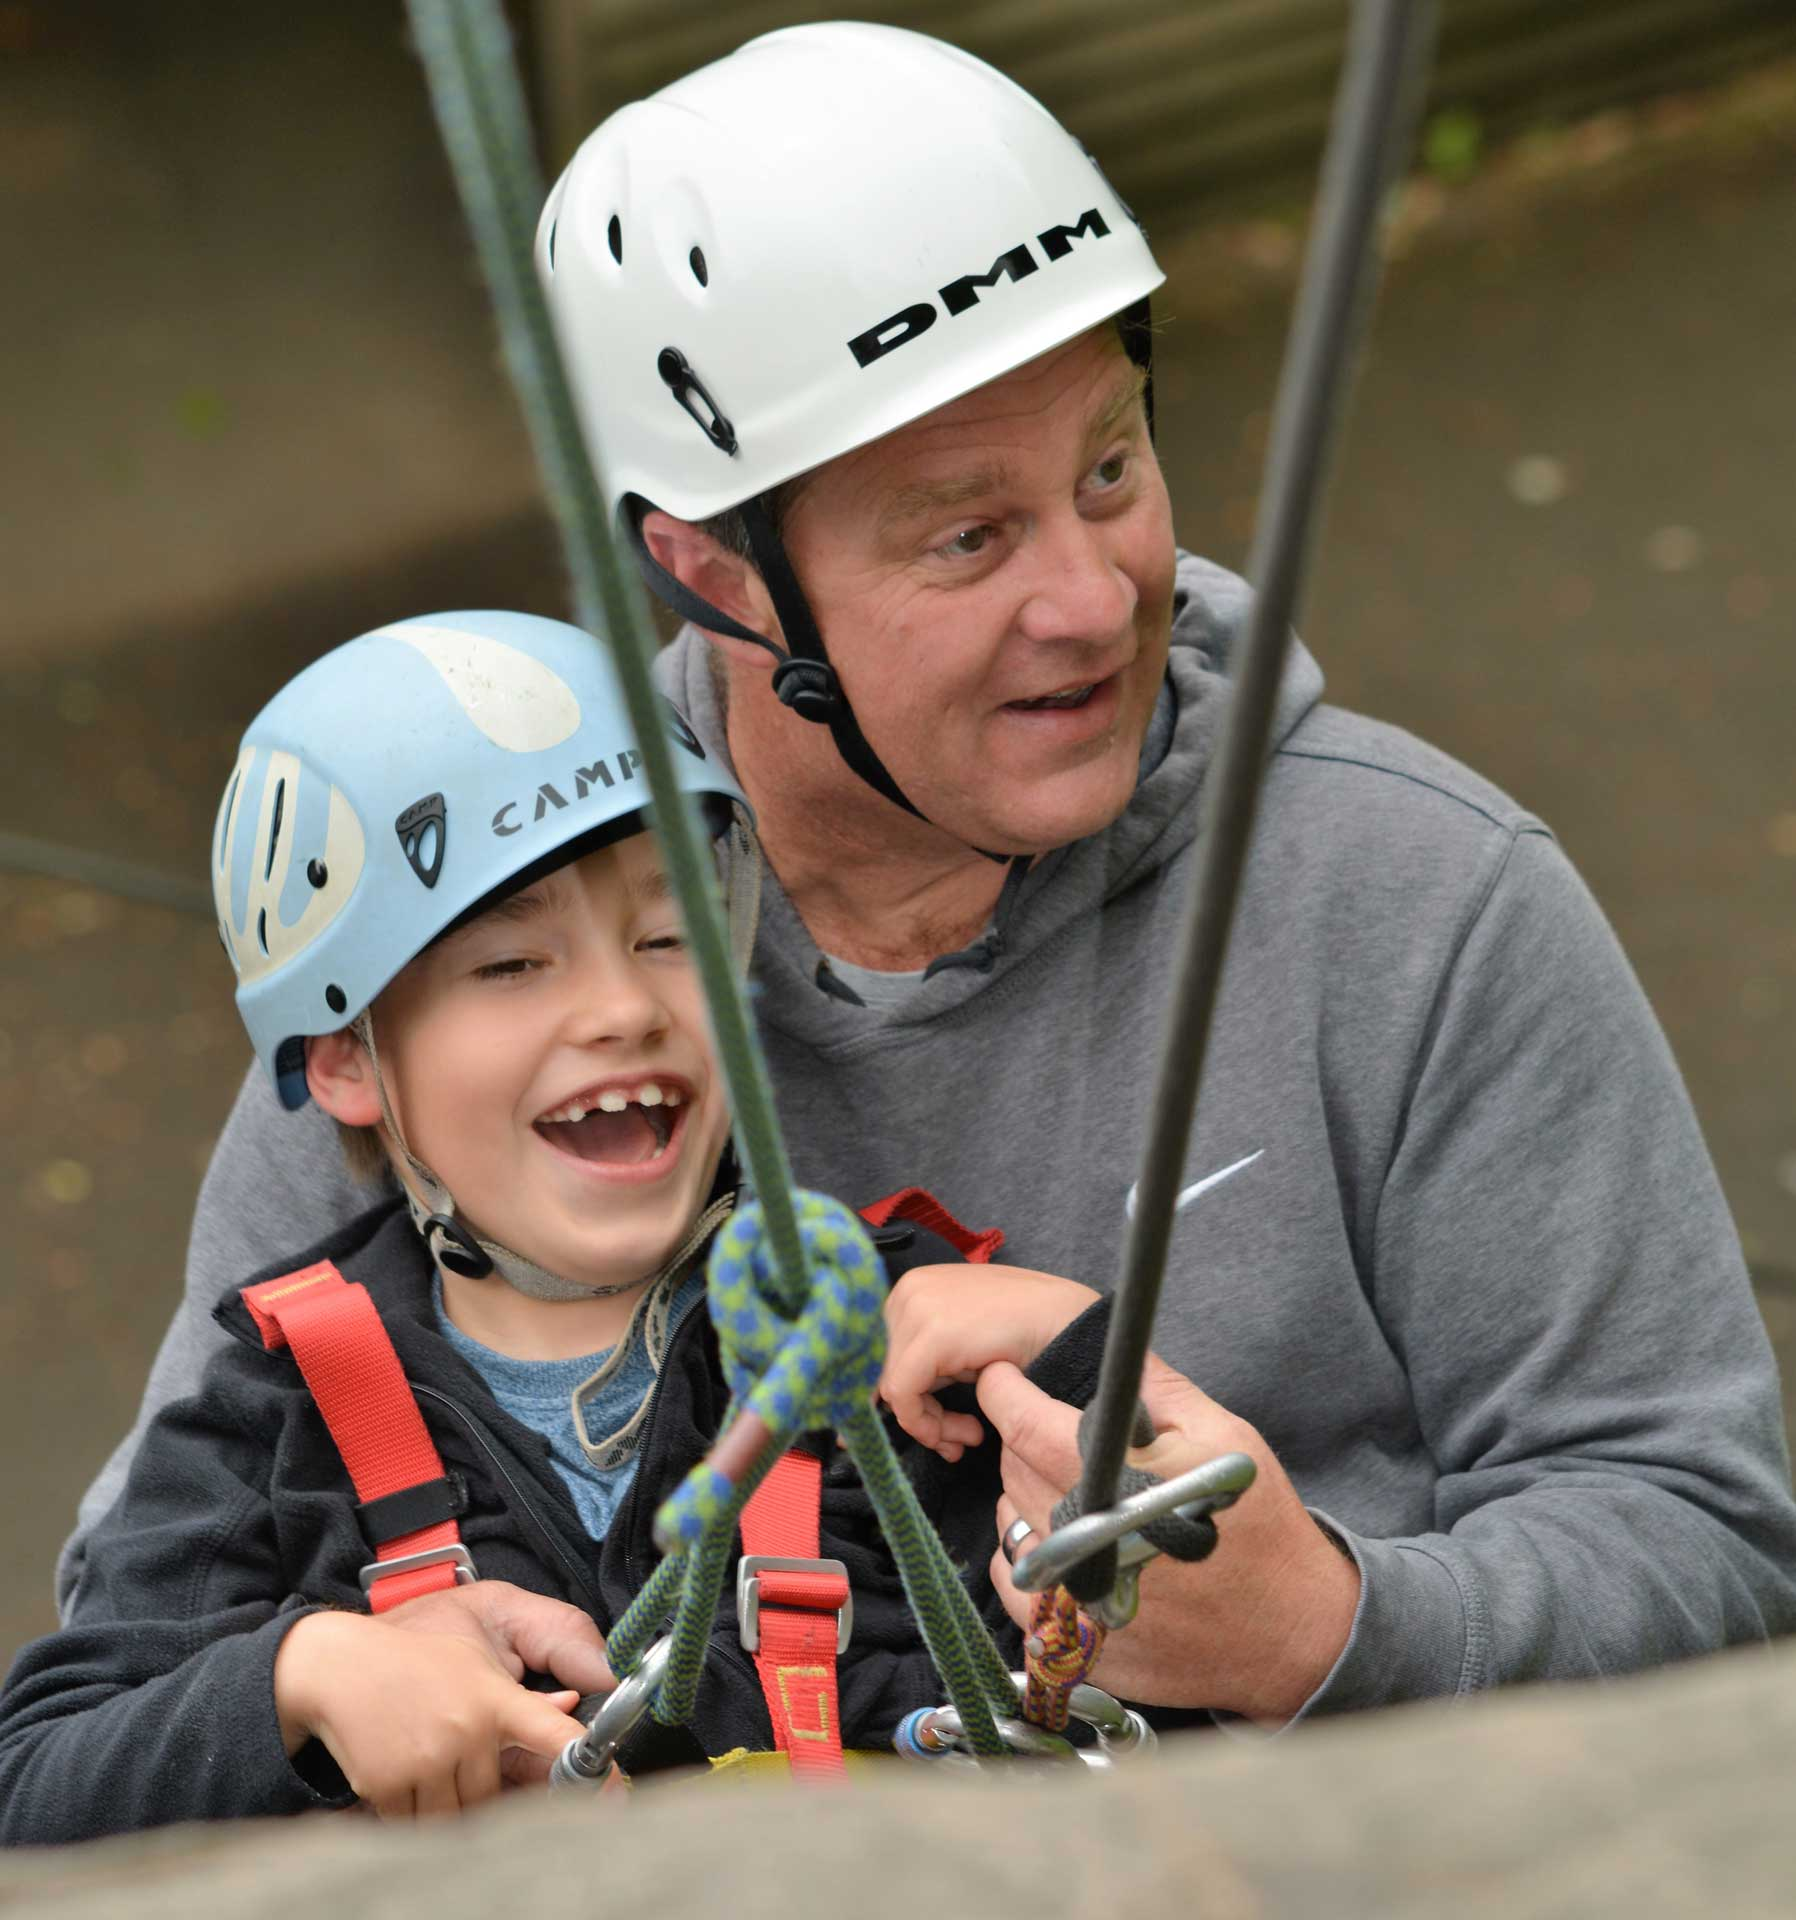 A child and man looking happy abseiling together outside with safety ropes and equipment at Calvert Trust Exmoor